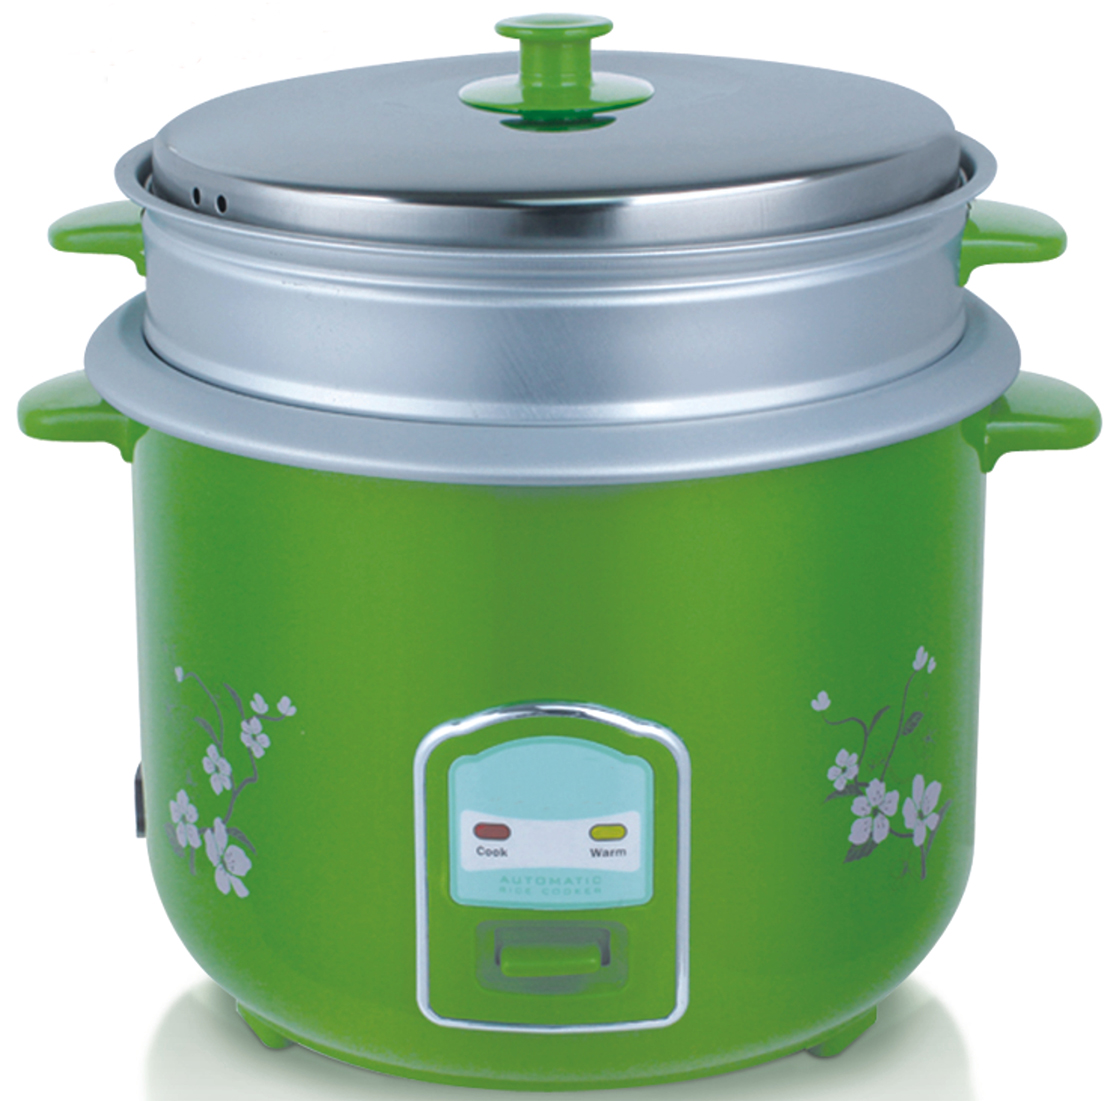 Straight type rice cooker TPZB60-01